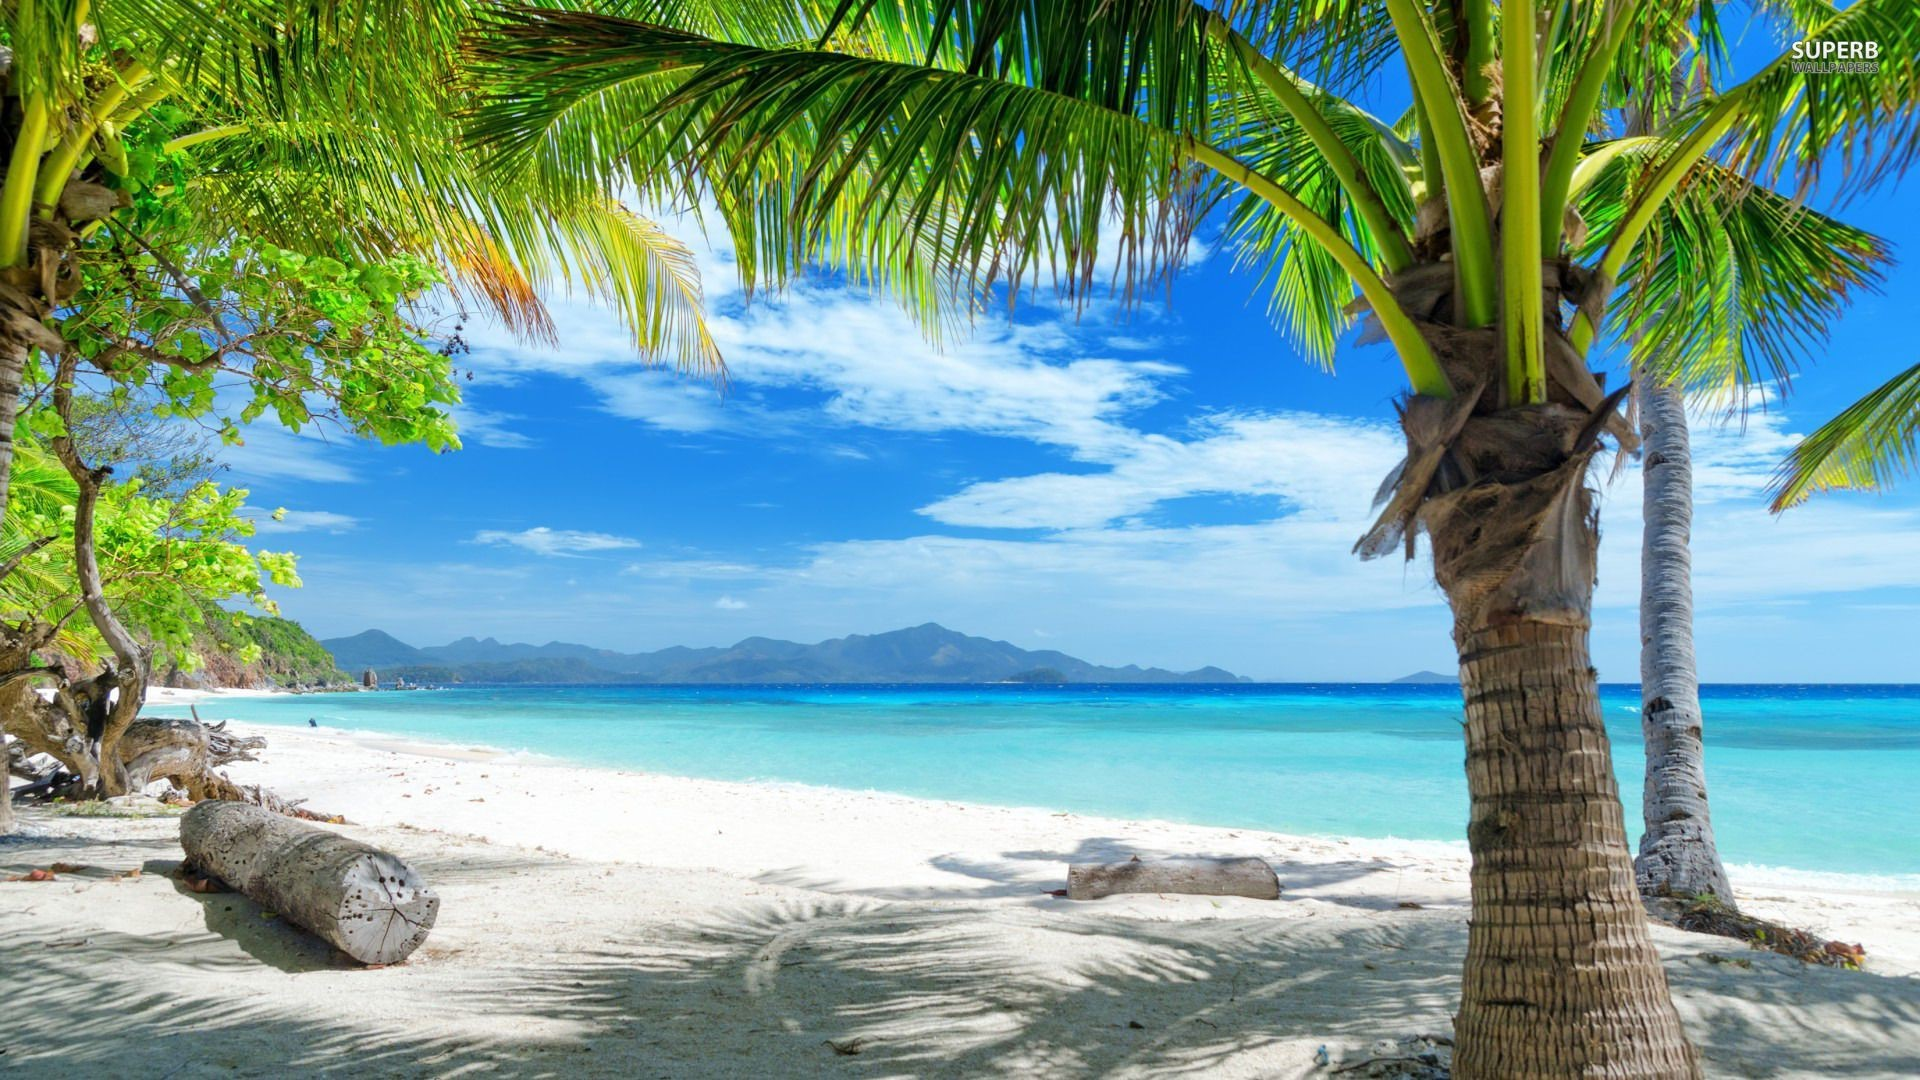 Tropical Beach Landscape Windows Background Wallpaper ...